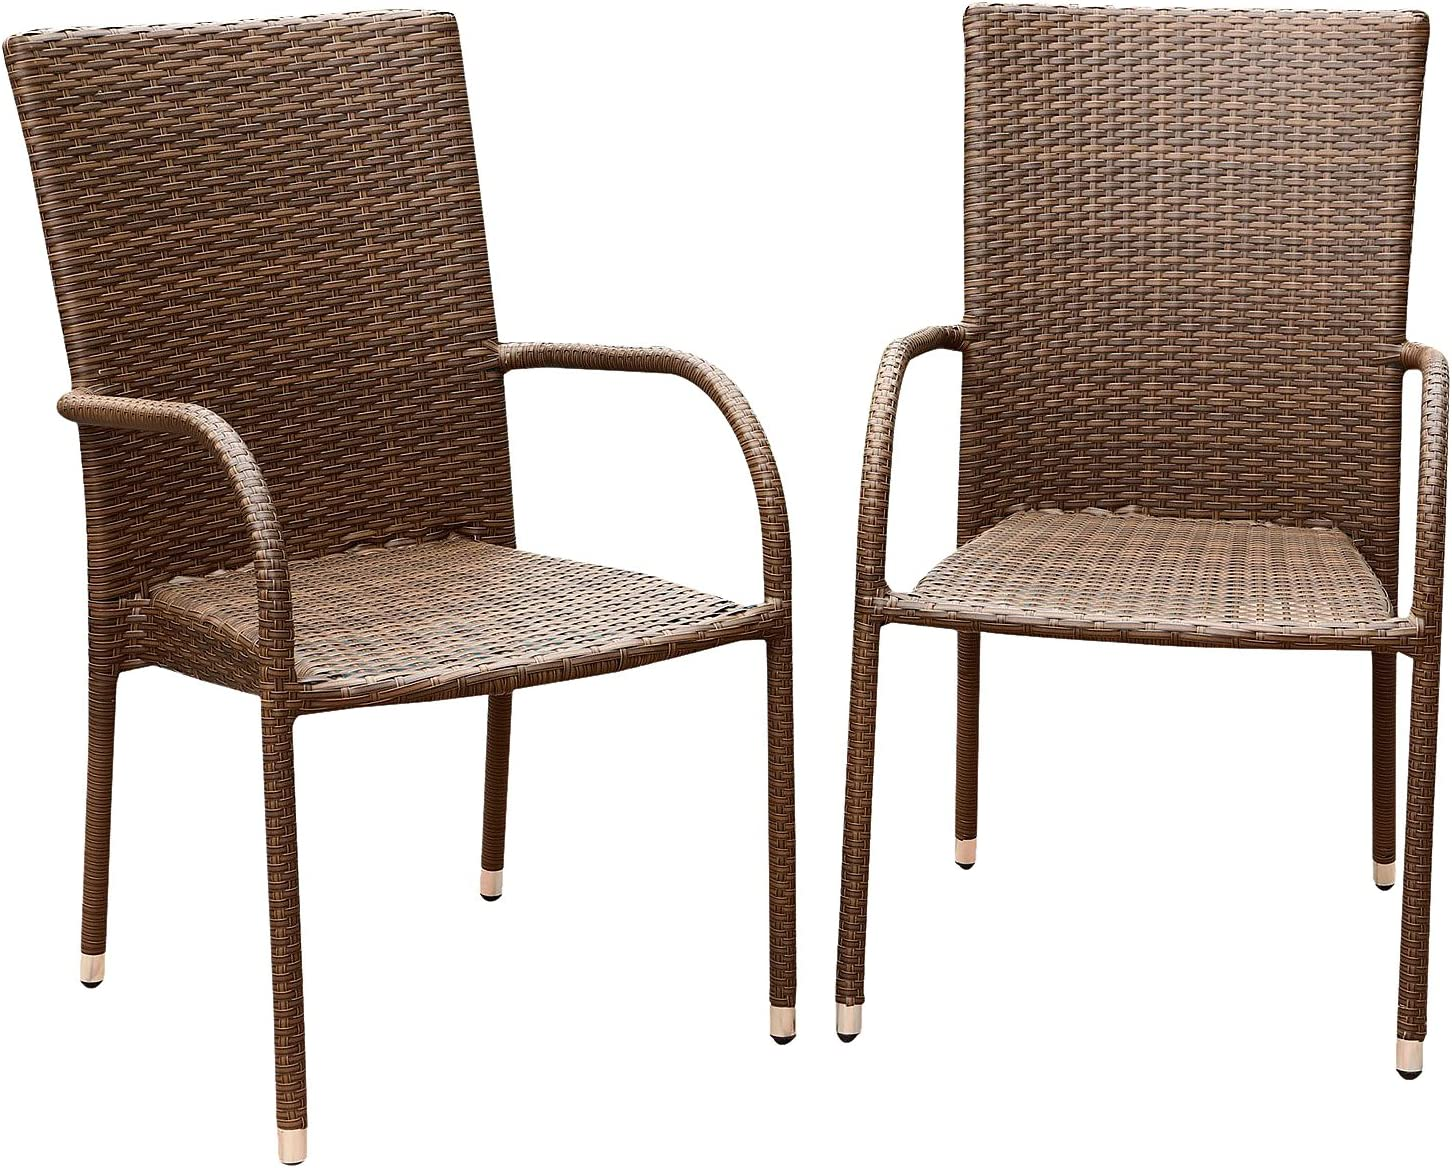 Abbyson Palermo Outdoor Wicker Dining Armchair, Brown, Set of 2